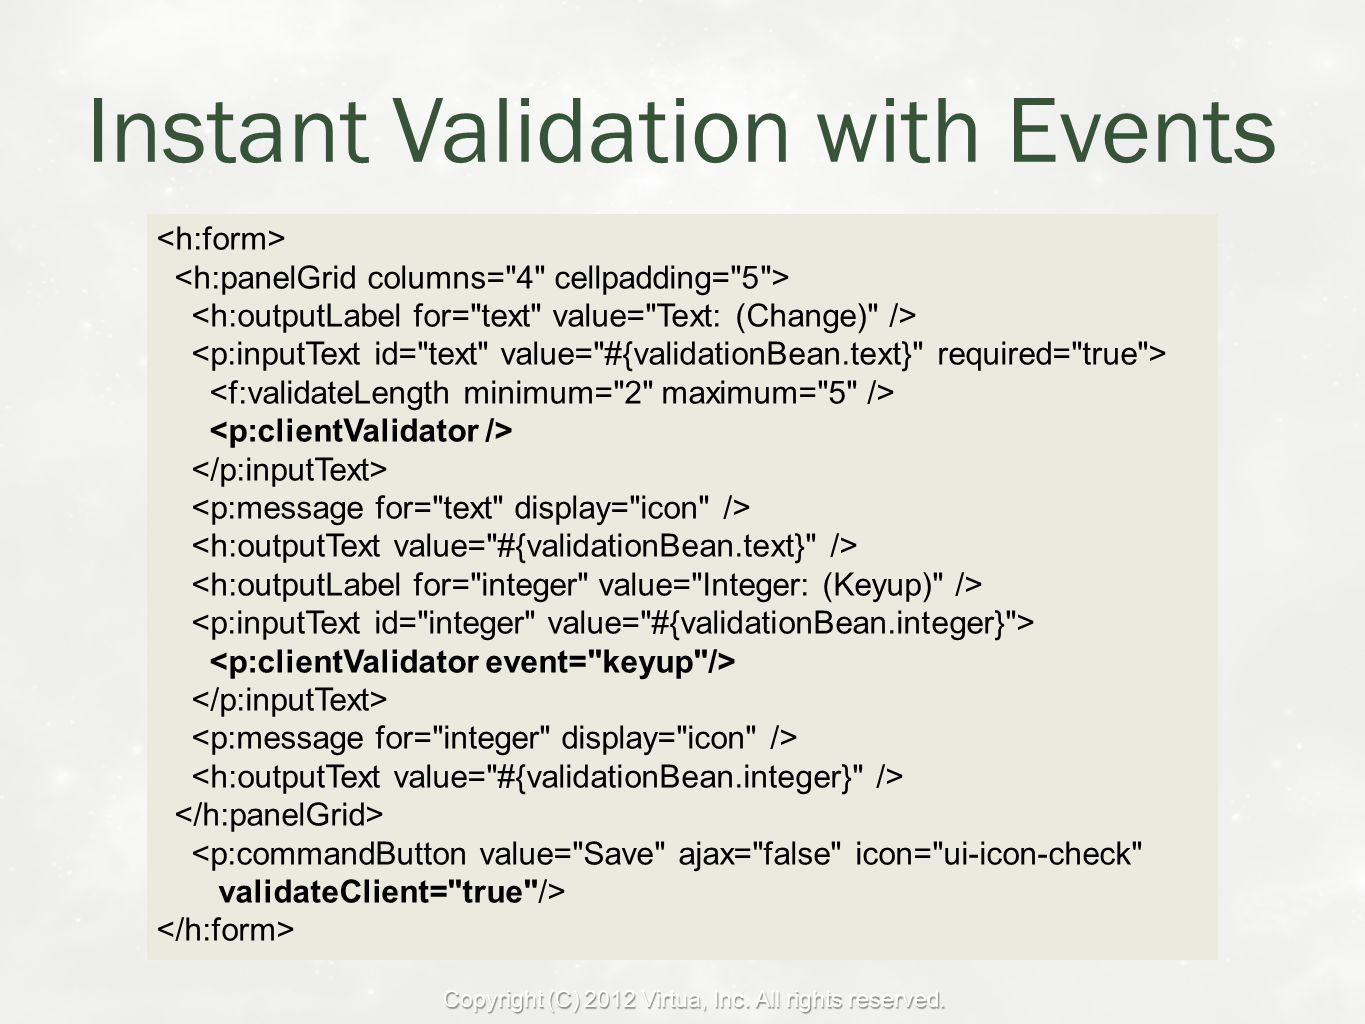 Instant Validation with Events Copyright (C) 2012 Virtua, Inc.